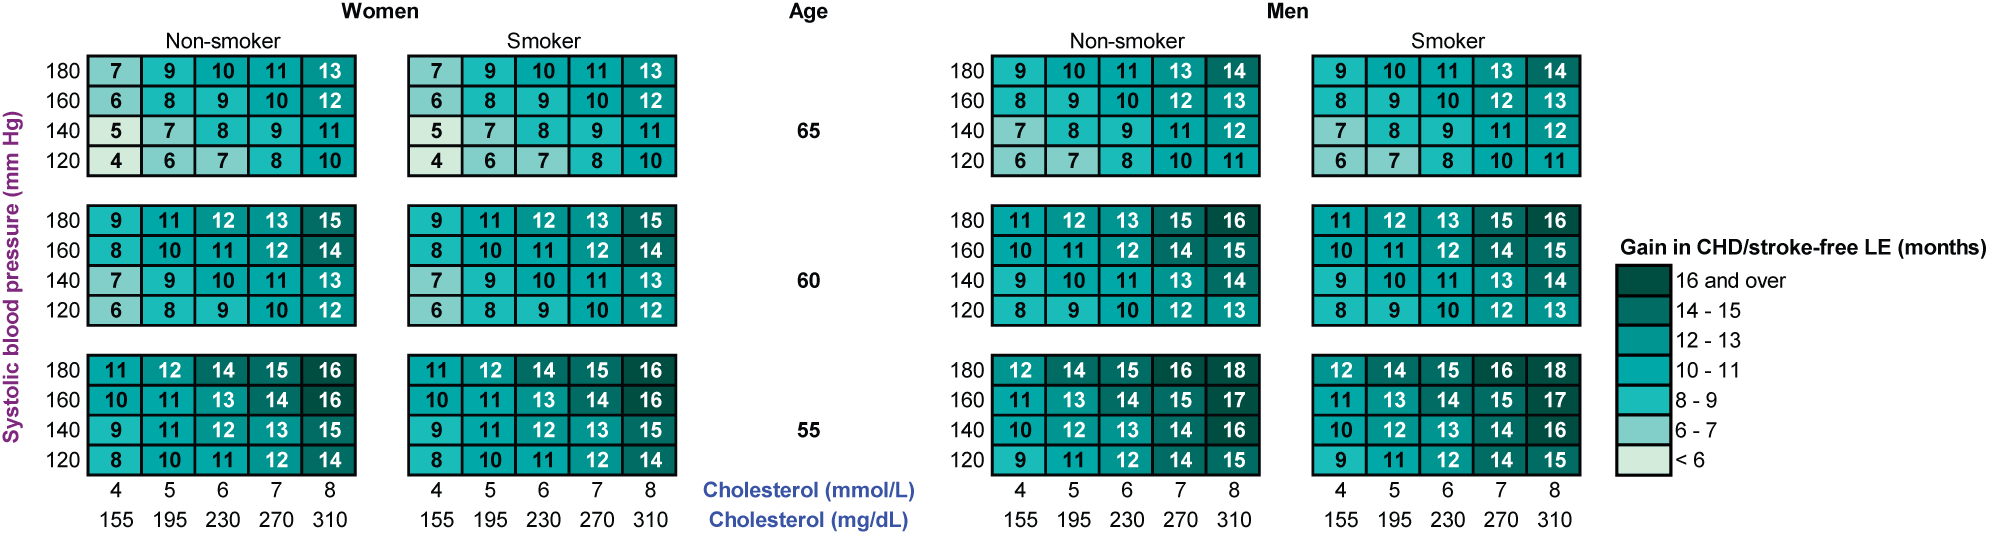 The gain in CHD/stroke-free life expectancy (in months) with statin therapy, calculated with the RISC model.